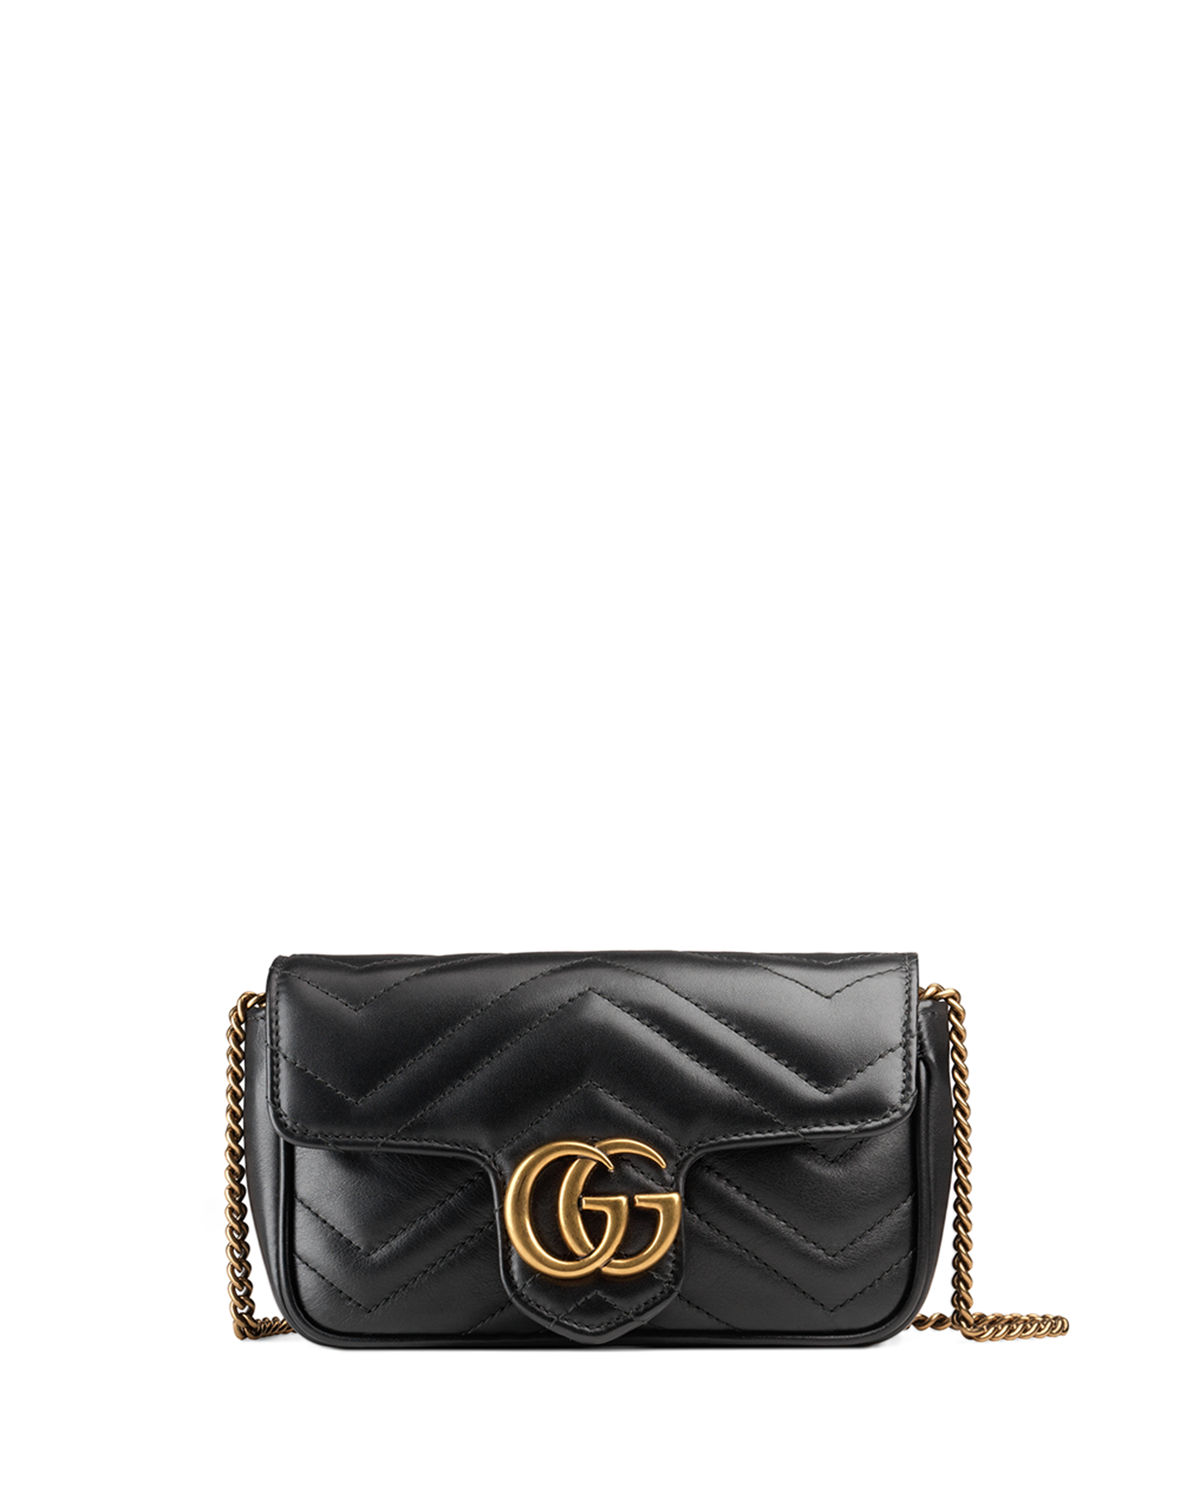 628be0f5091b3a Gucci GG Marmont Matelasse Leather Super Mini Bag | Neiman Marcus